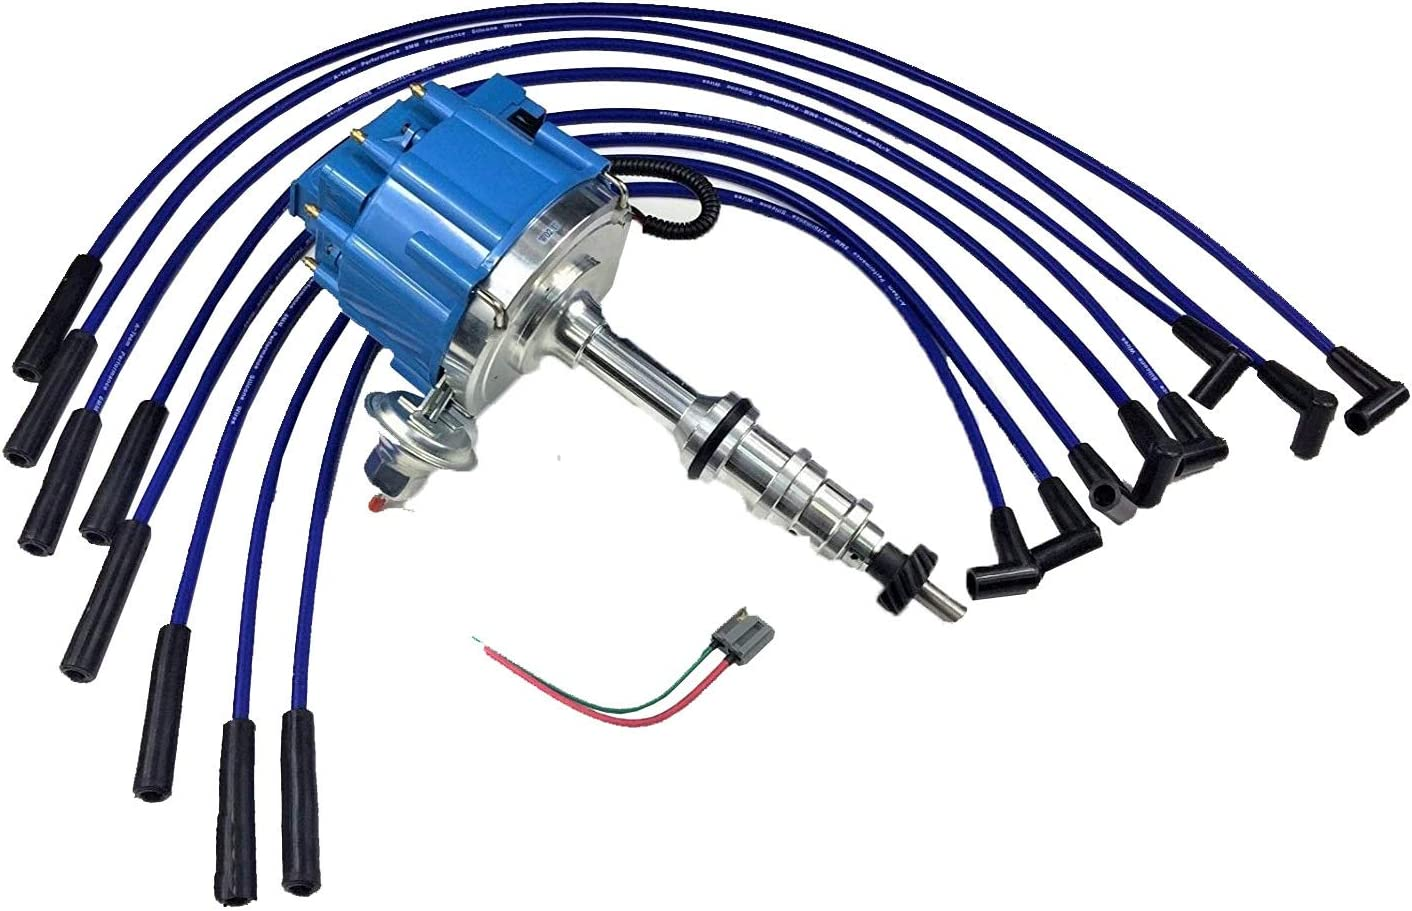 A-Team Performance HEI Complete Distributor 65K Coil Compatible With Ford FE 352 360 390 427 428 One-Wire Installation Red Cap